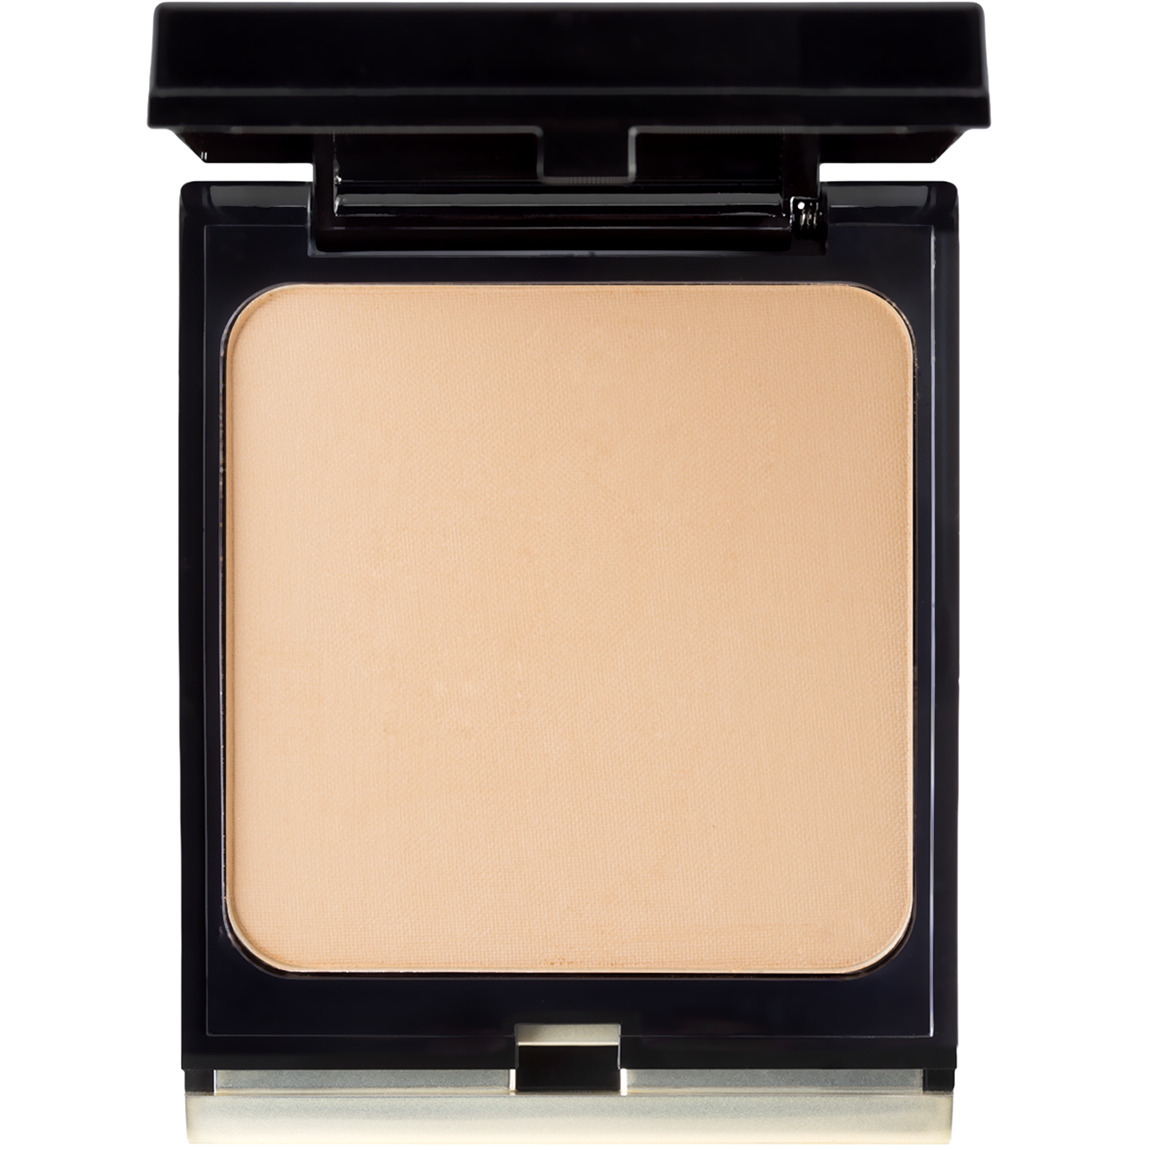 Kevyn Aucoin The Sensual Skin Powder Foundation PF06 product swatch.